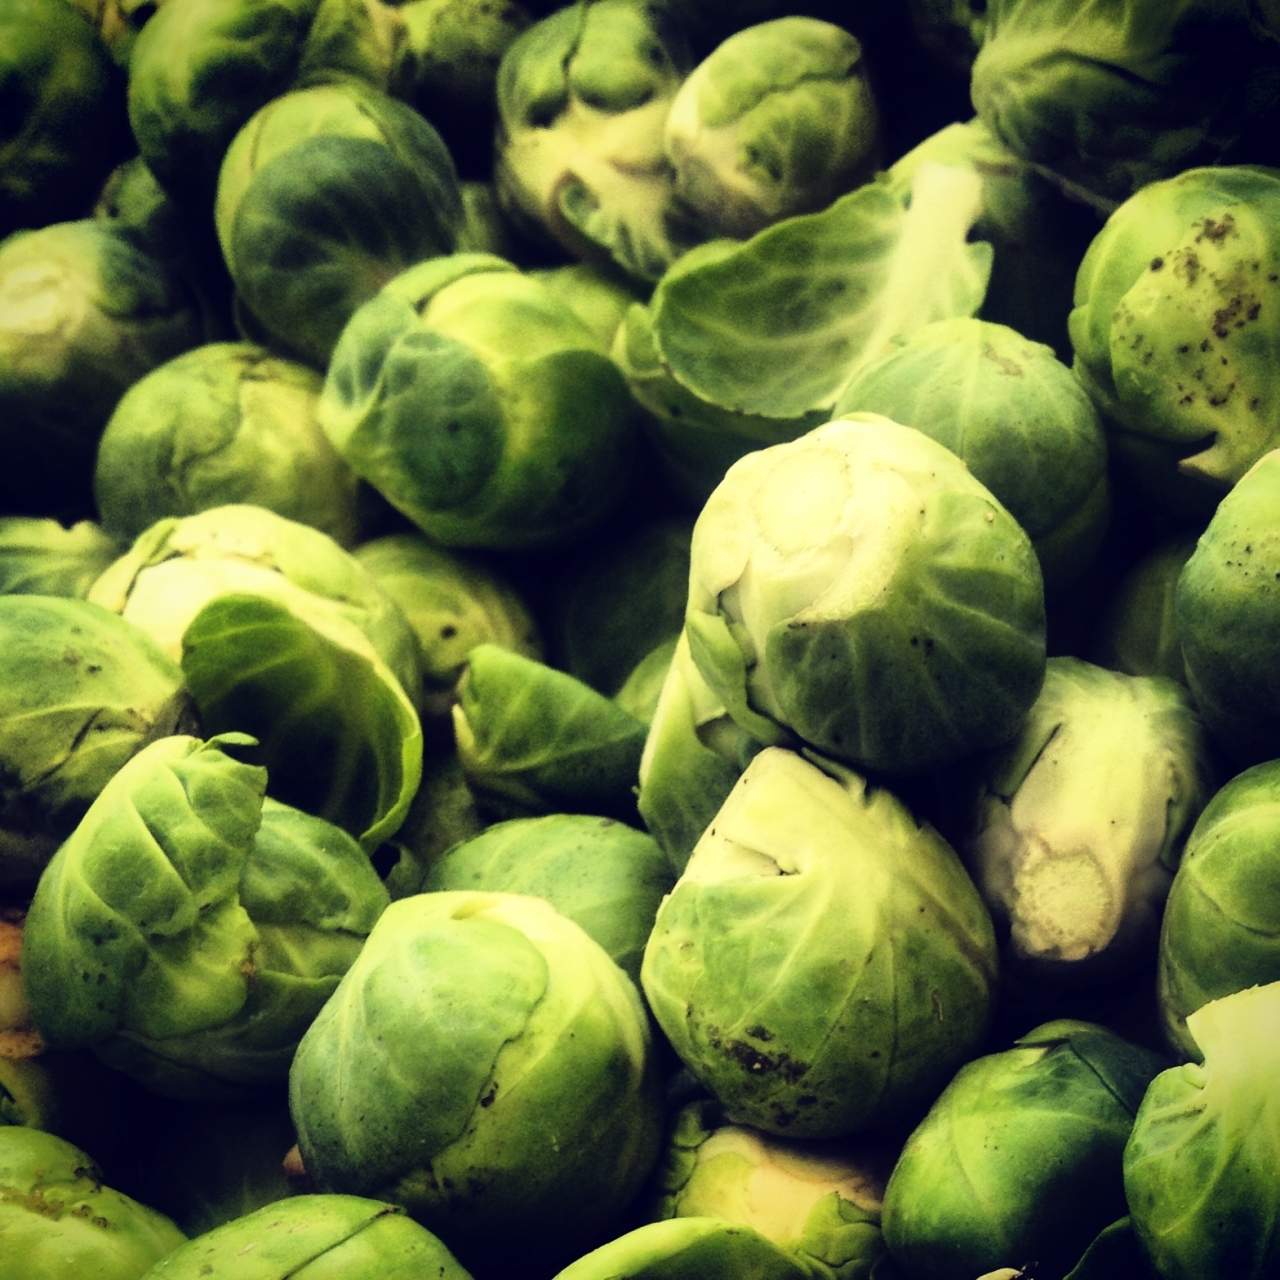 Finding Love for Brussels Sprouts